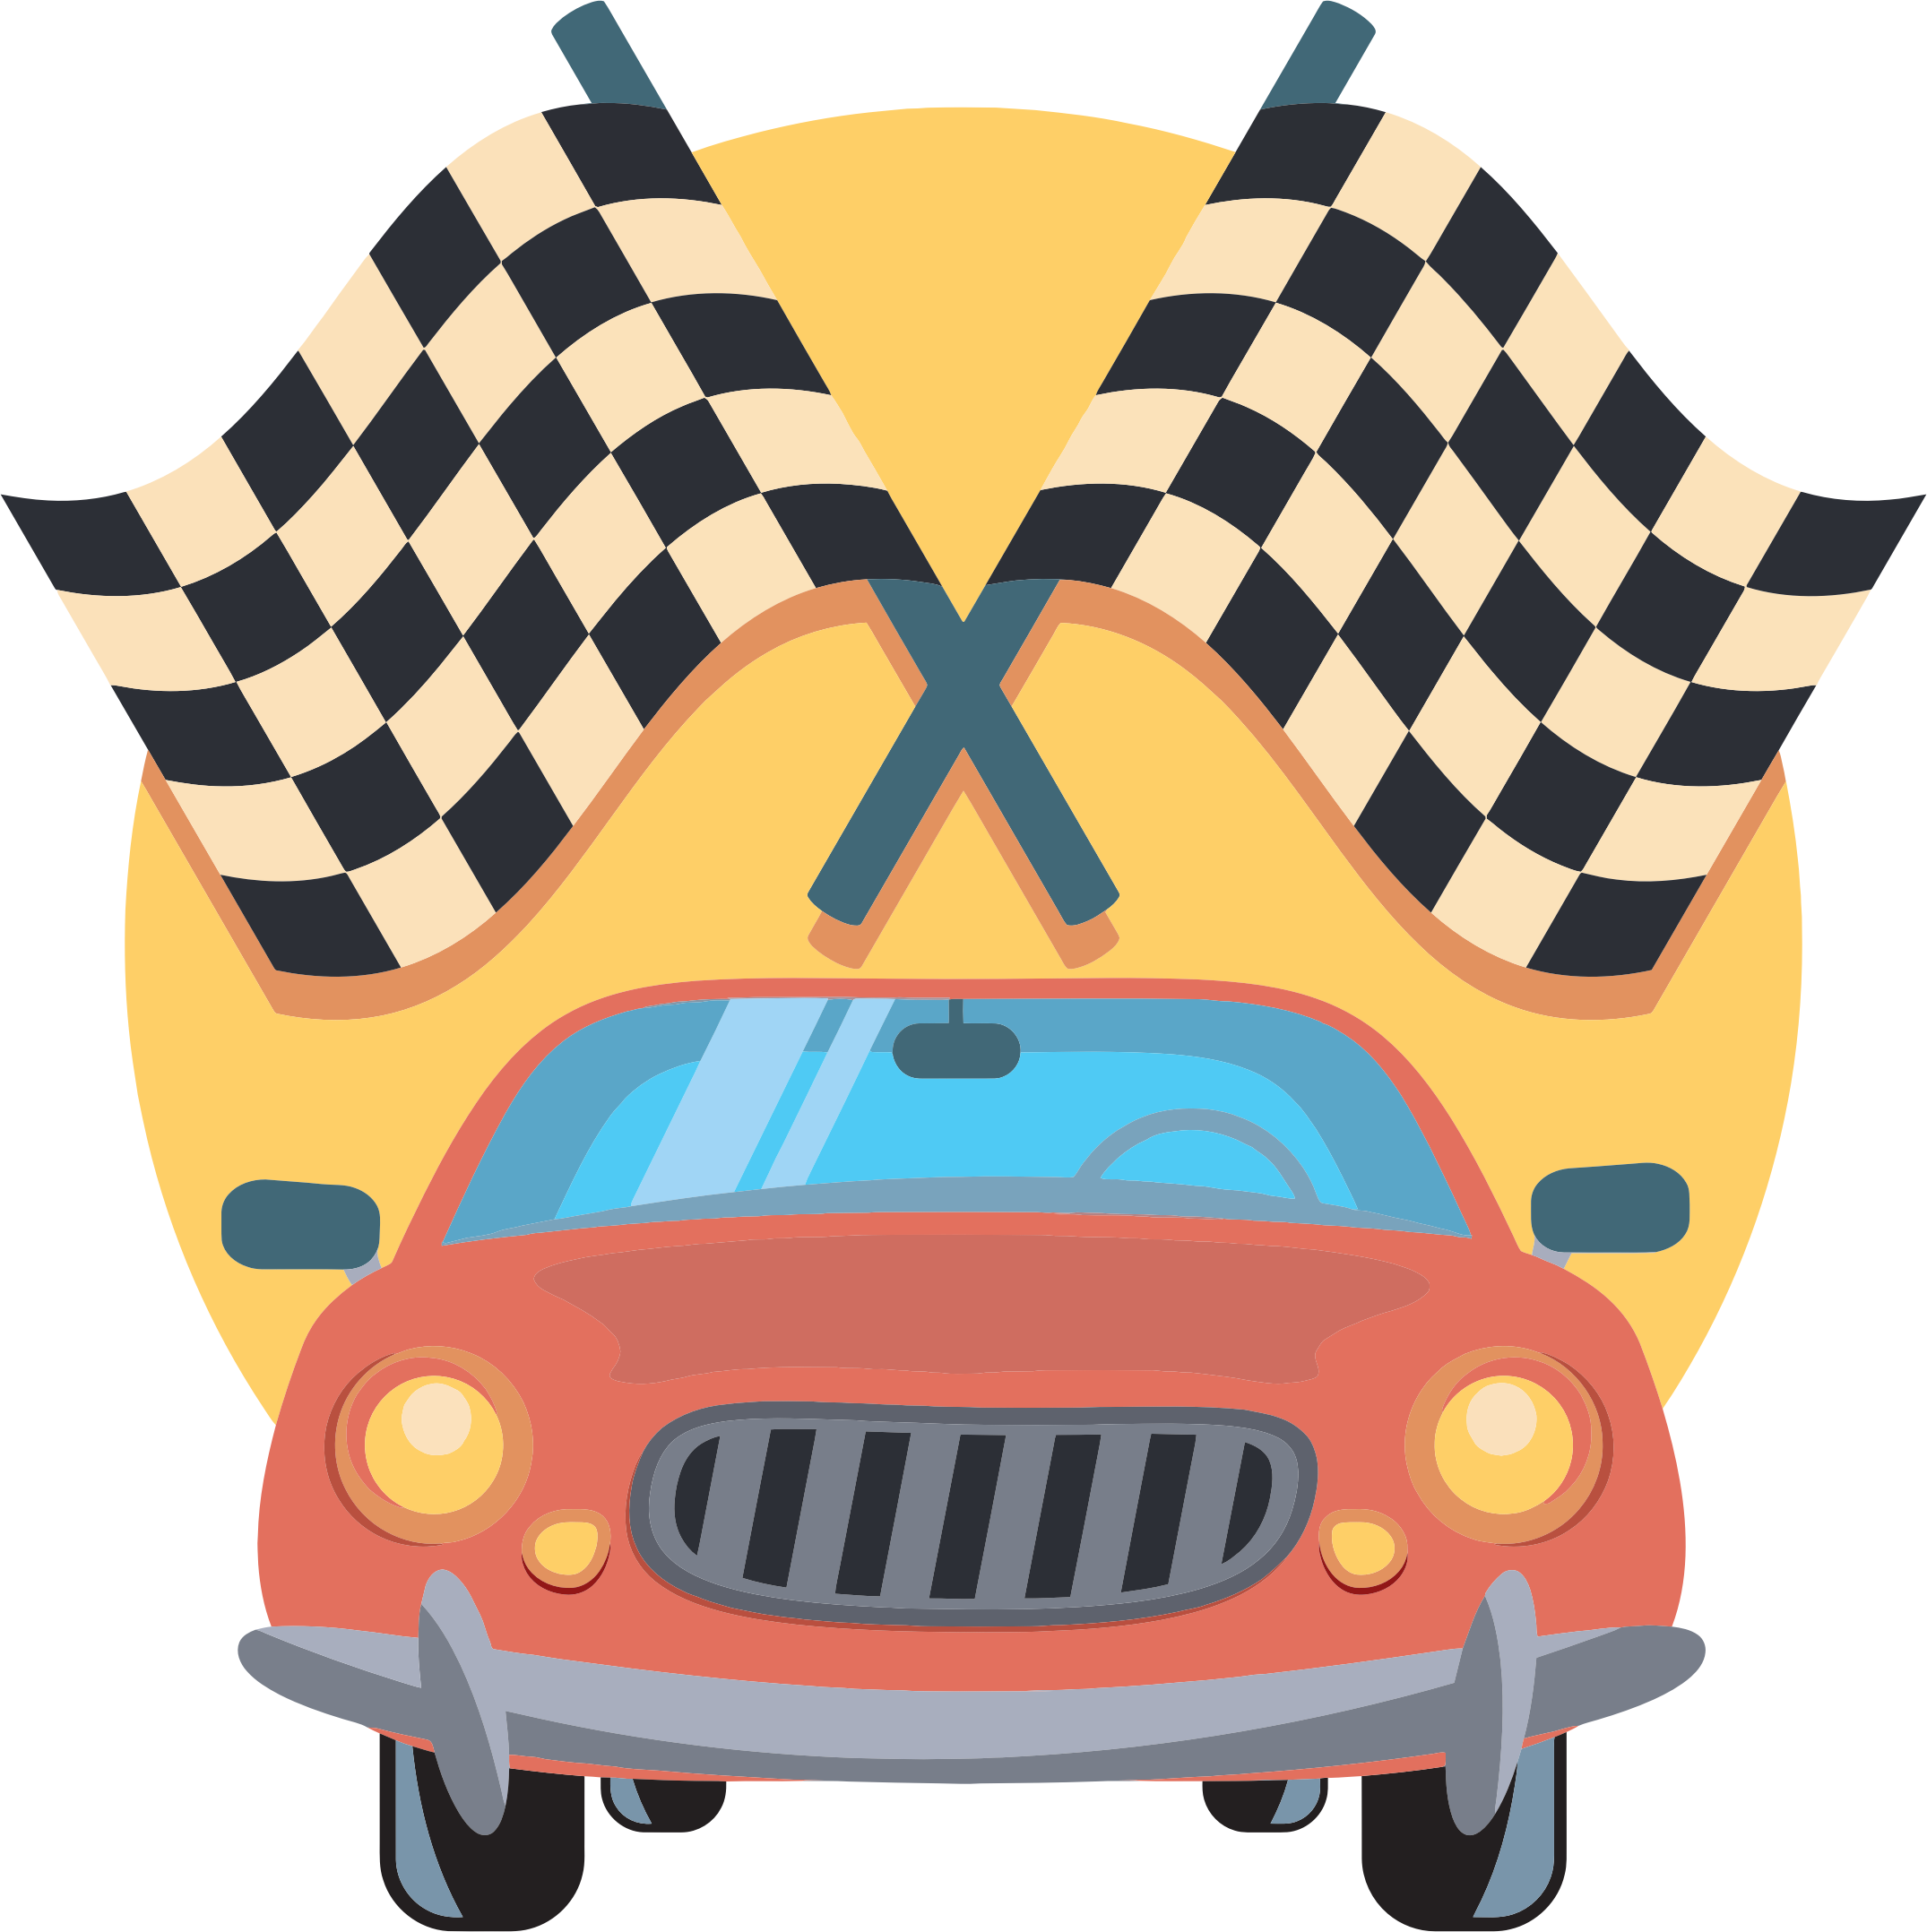 Library of car racer image free library png files.